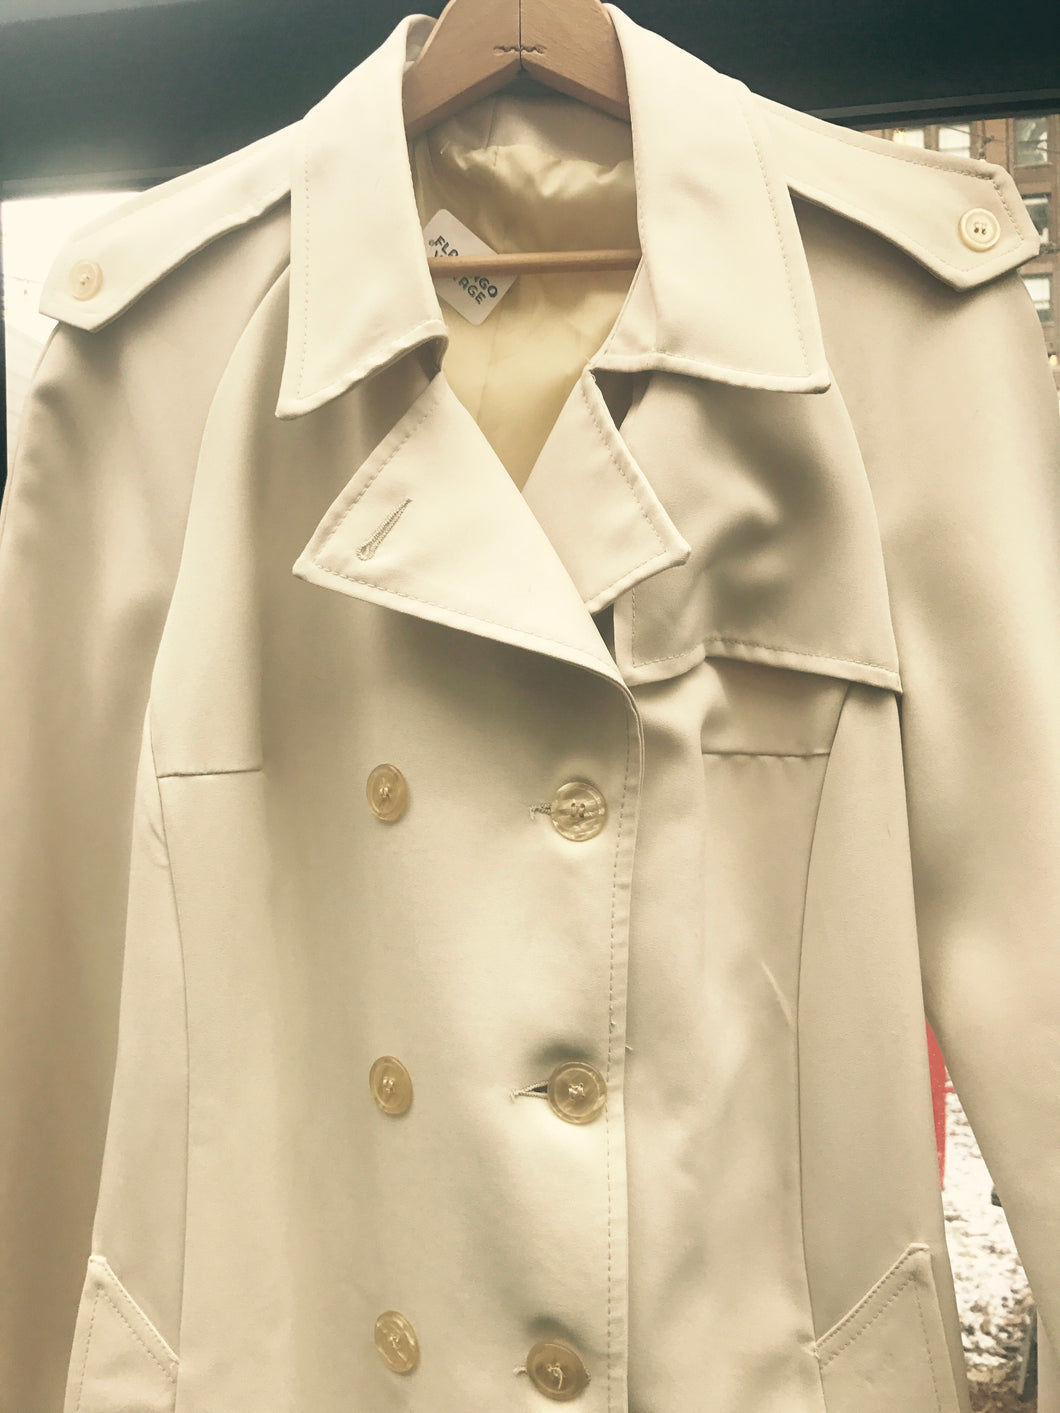 Large vintage gabardine trench coat - vintage women's jacket - tan trench coat